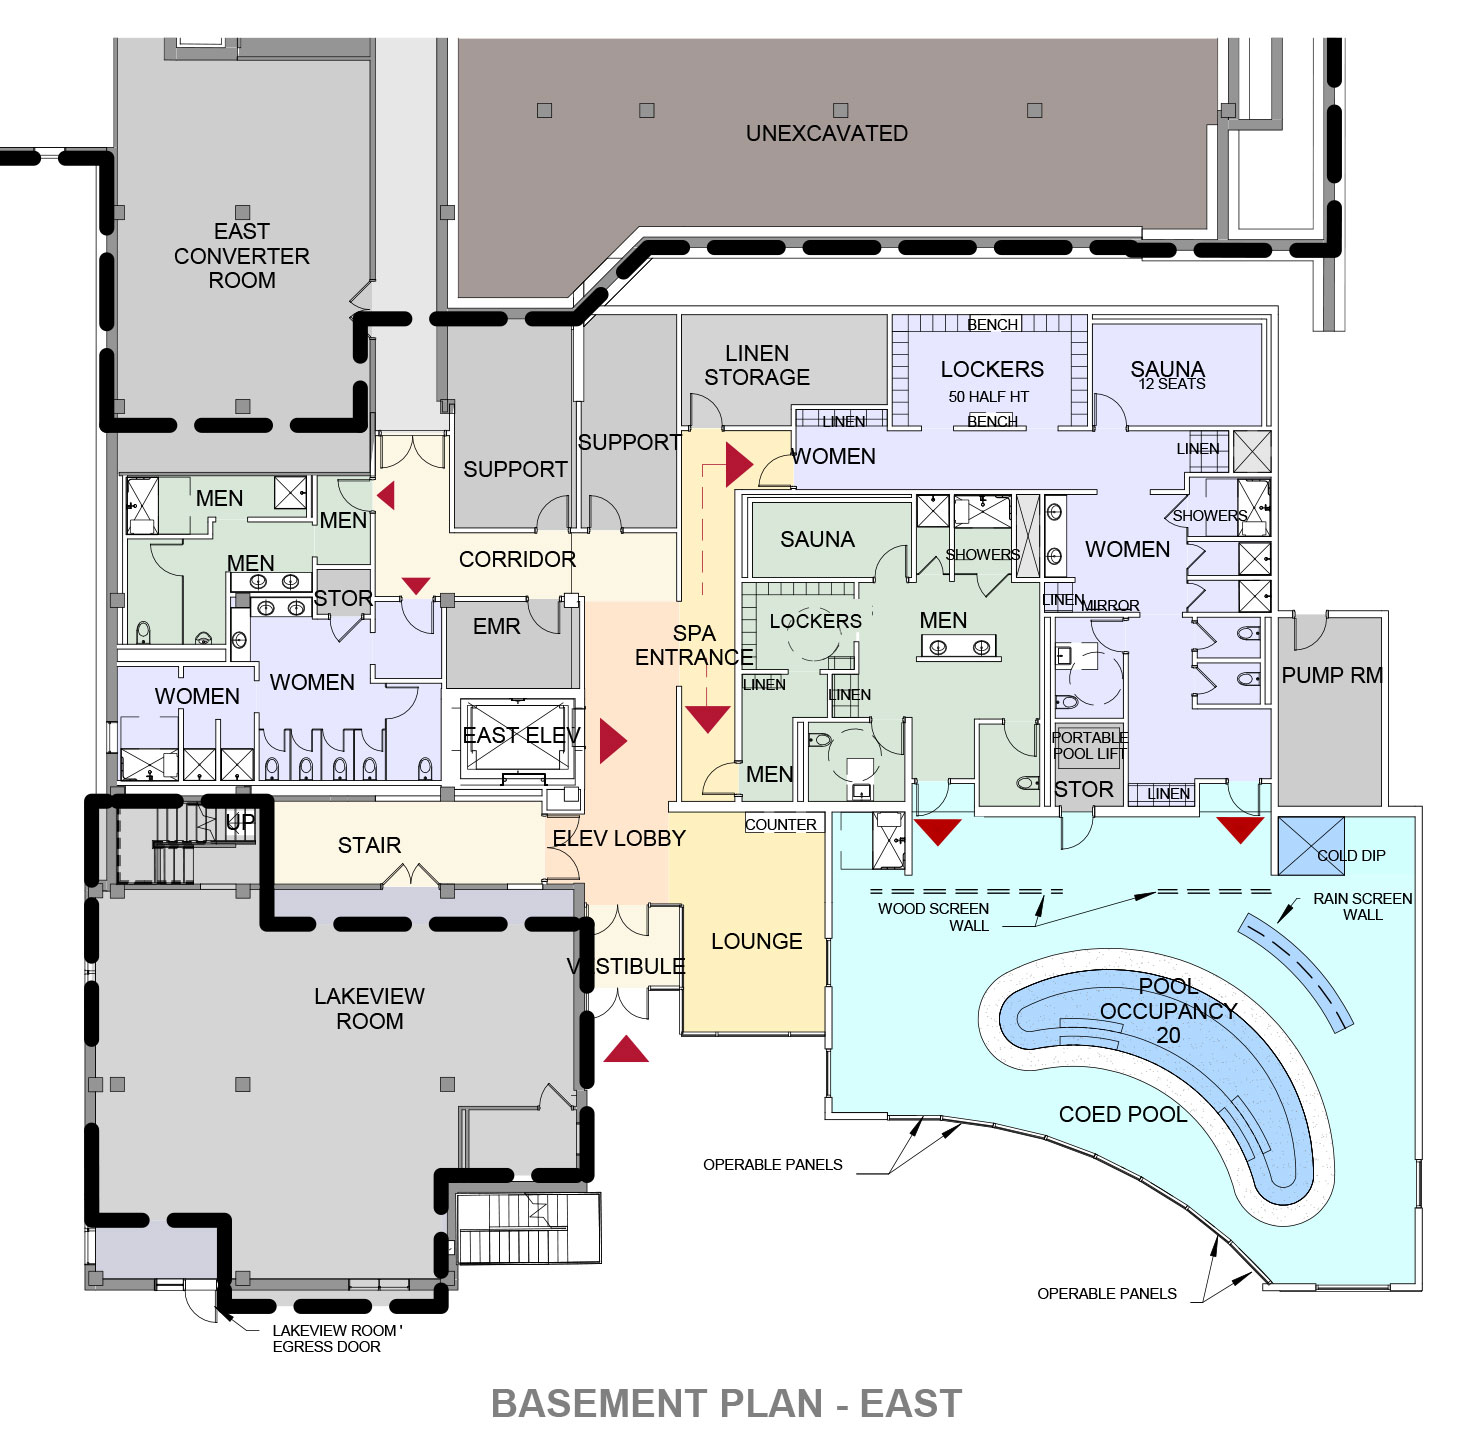 Basement Level Plan showing the Water Therapy Complex Expansion